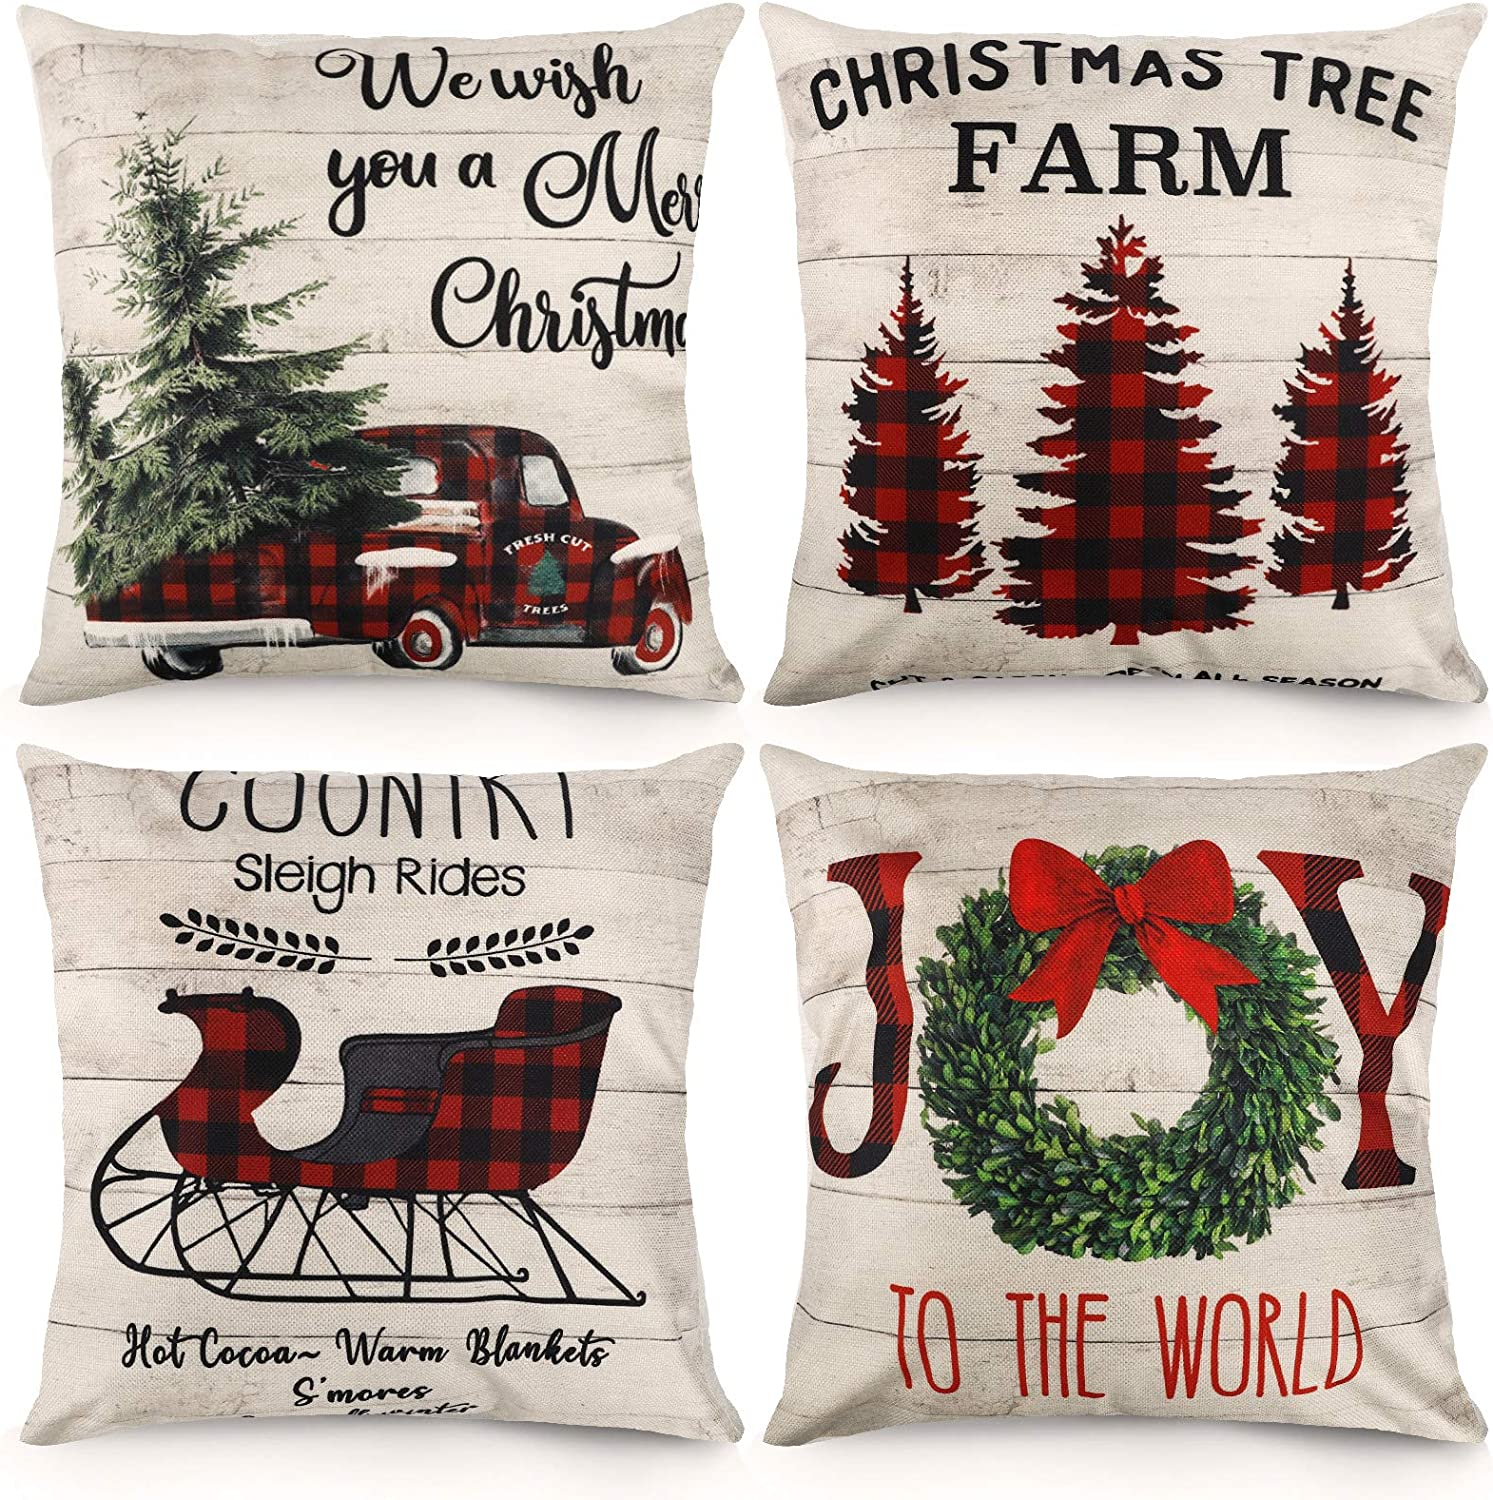 Christmas Pillow Covers 18x18 Inches Set of 4 Buffalo Plaid Farmhouse Xmas Decor